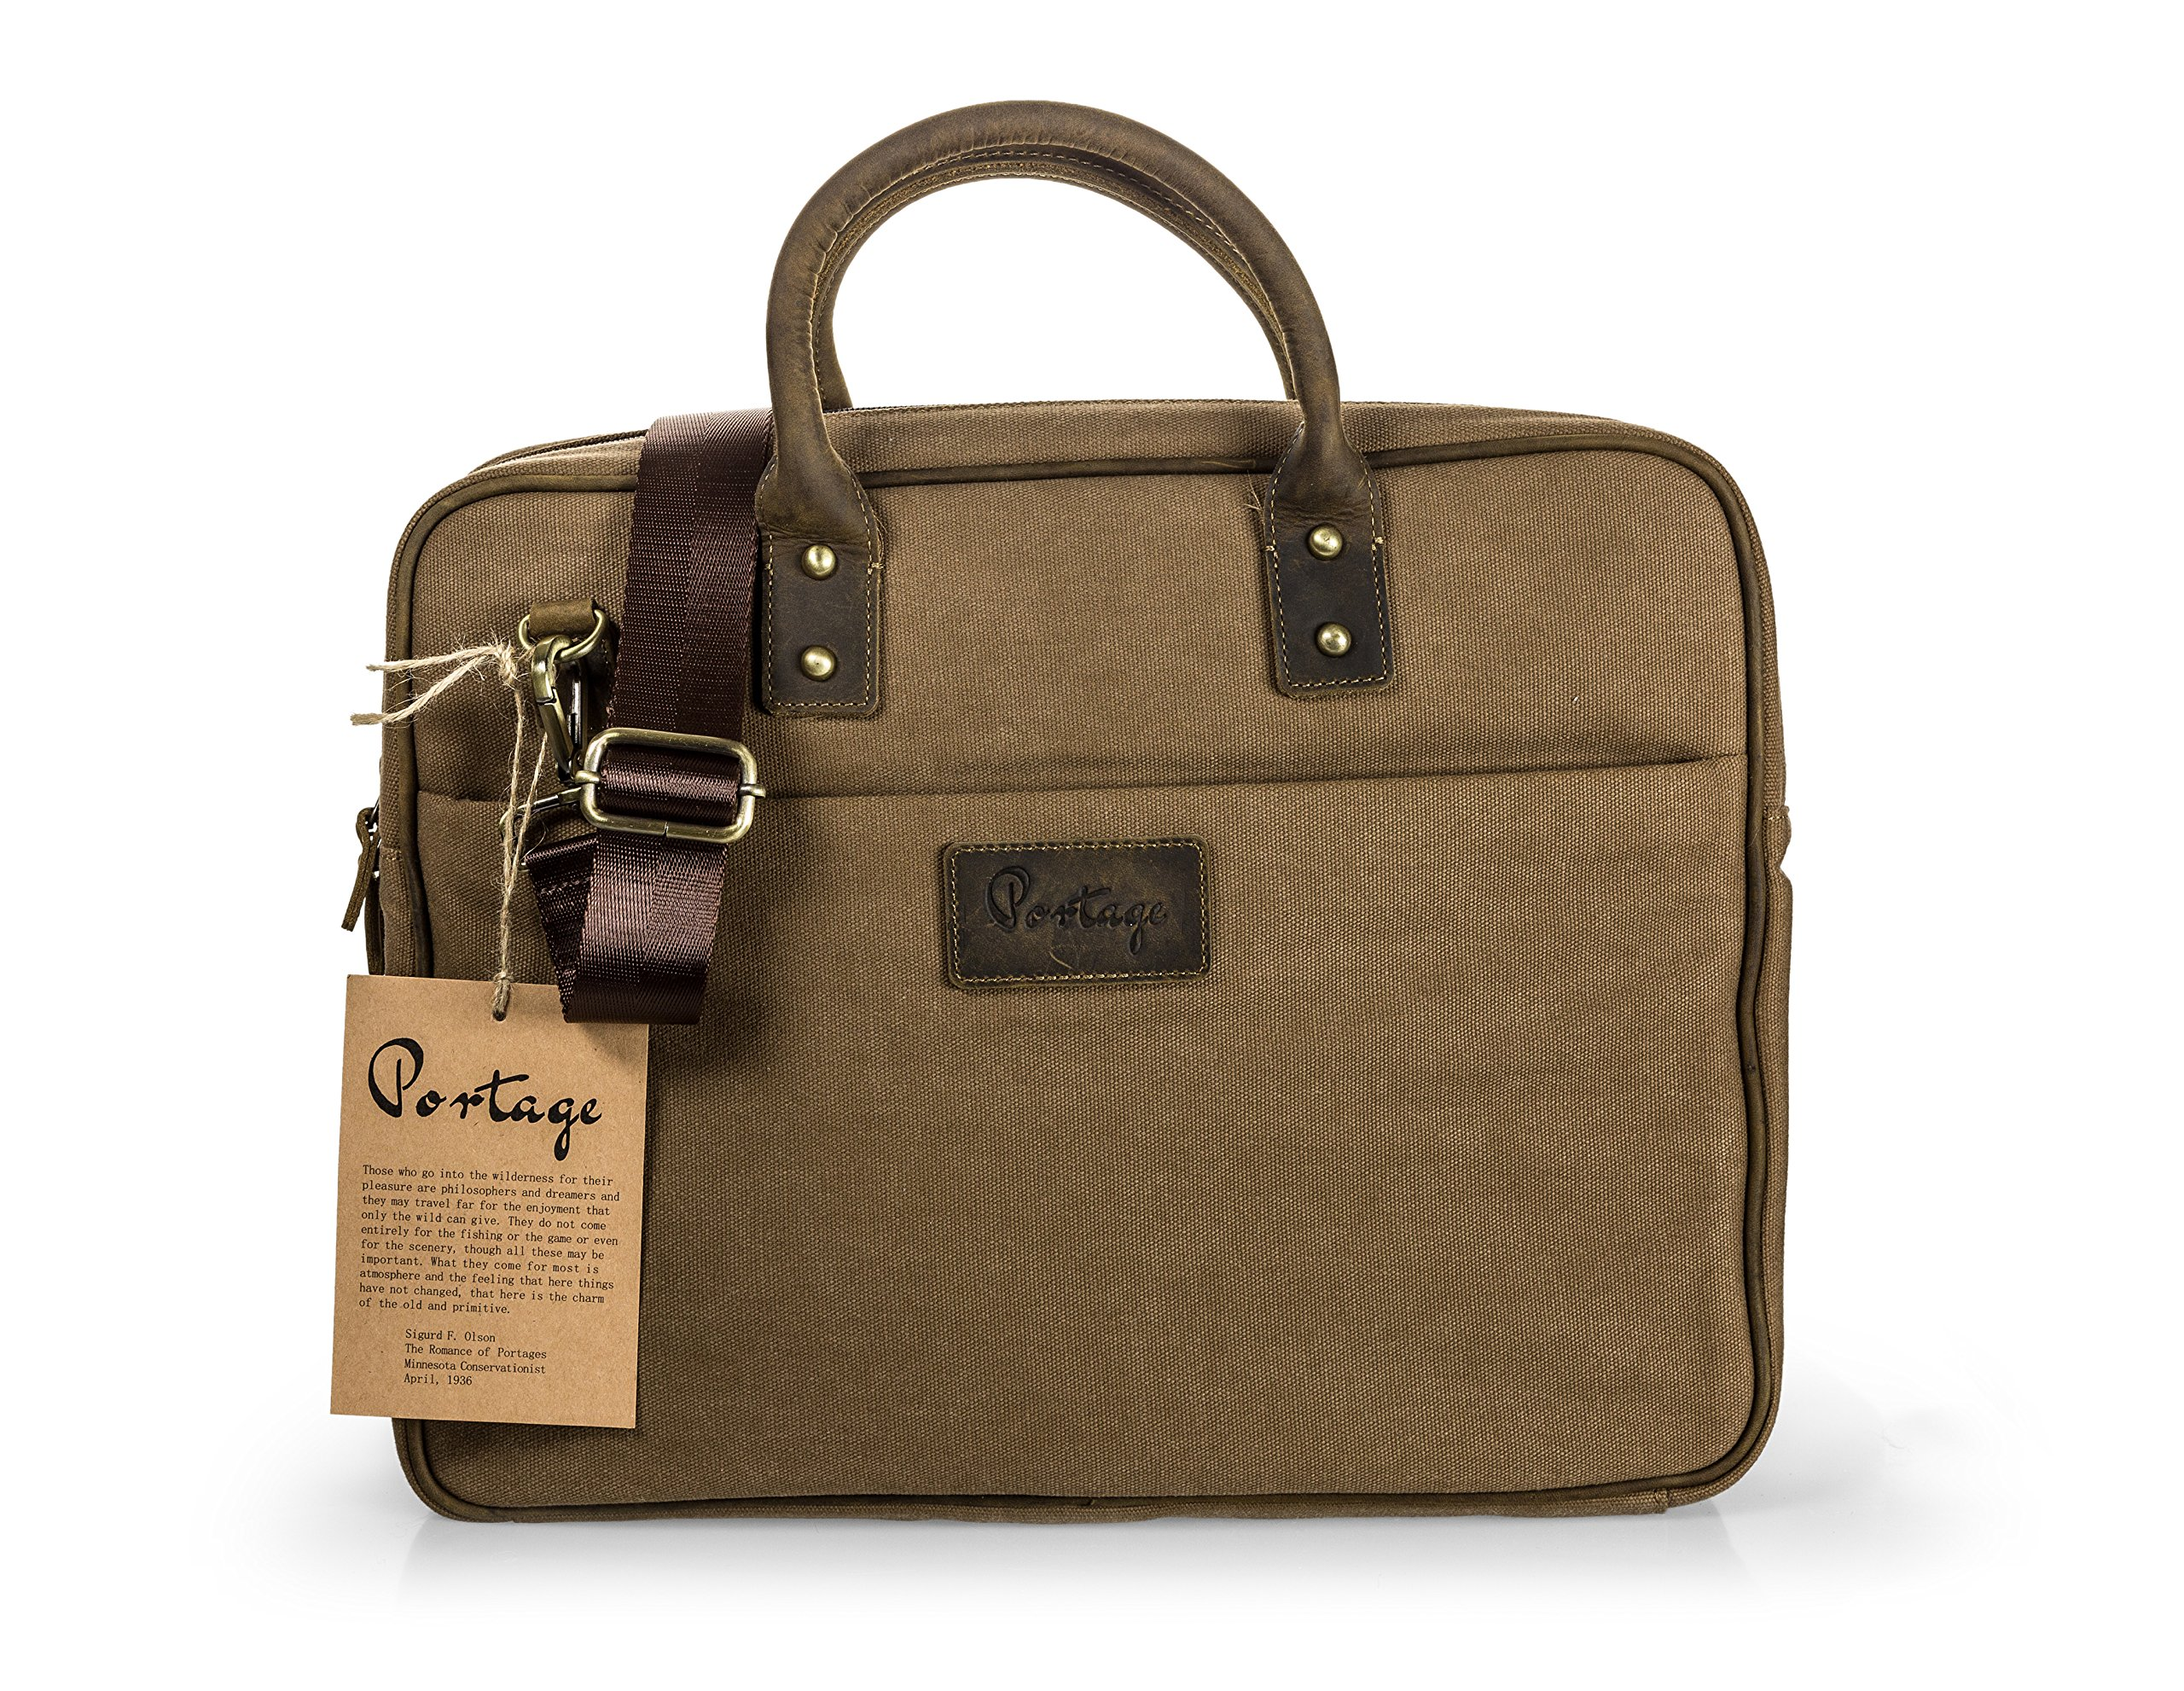 The Northwoods Laptop Briefcase Bag // Vintage Rugged Design // Leather and Canvas paired with soft plaid interior lining. NEW! Fall of 2017! Fits MacBook 13'' 15'' Chromebook, Surface, Ipad, Tablets